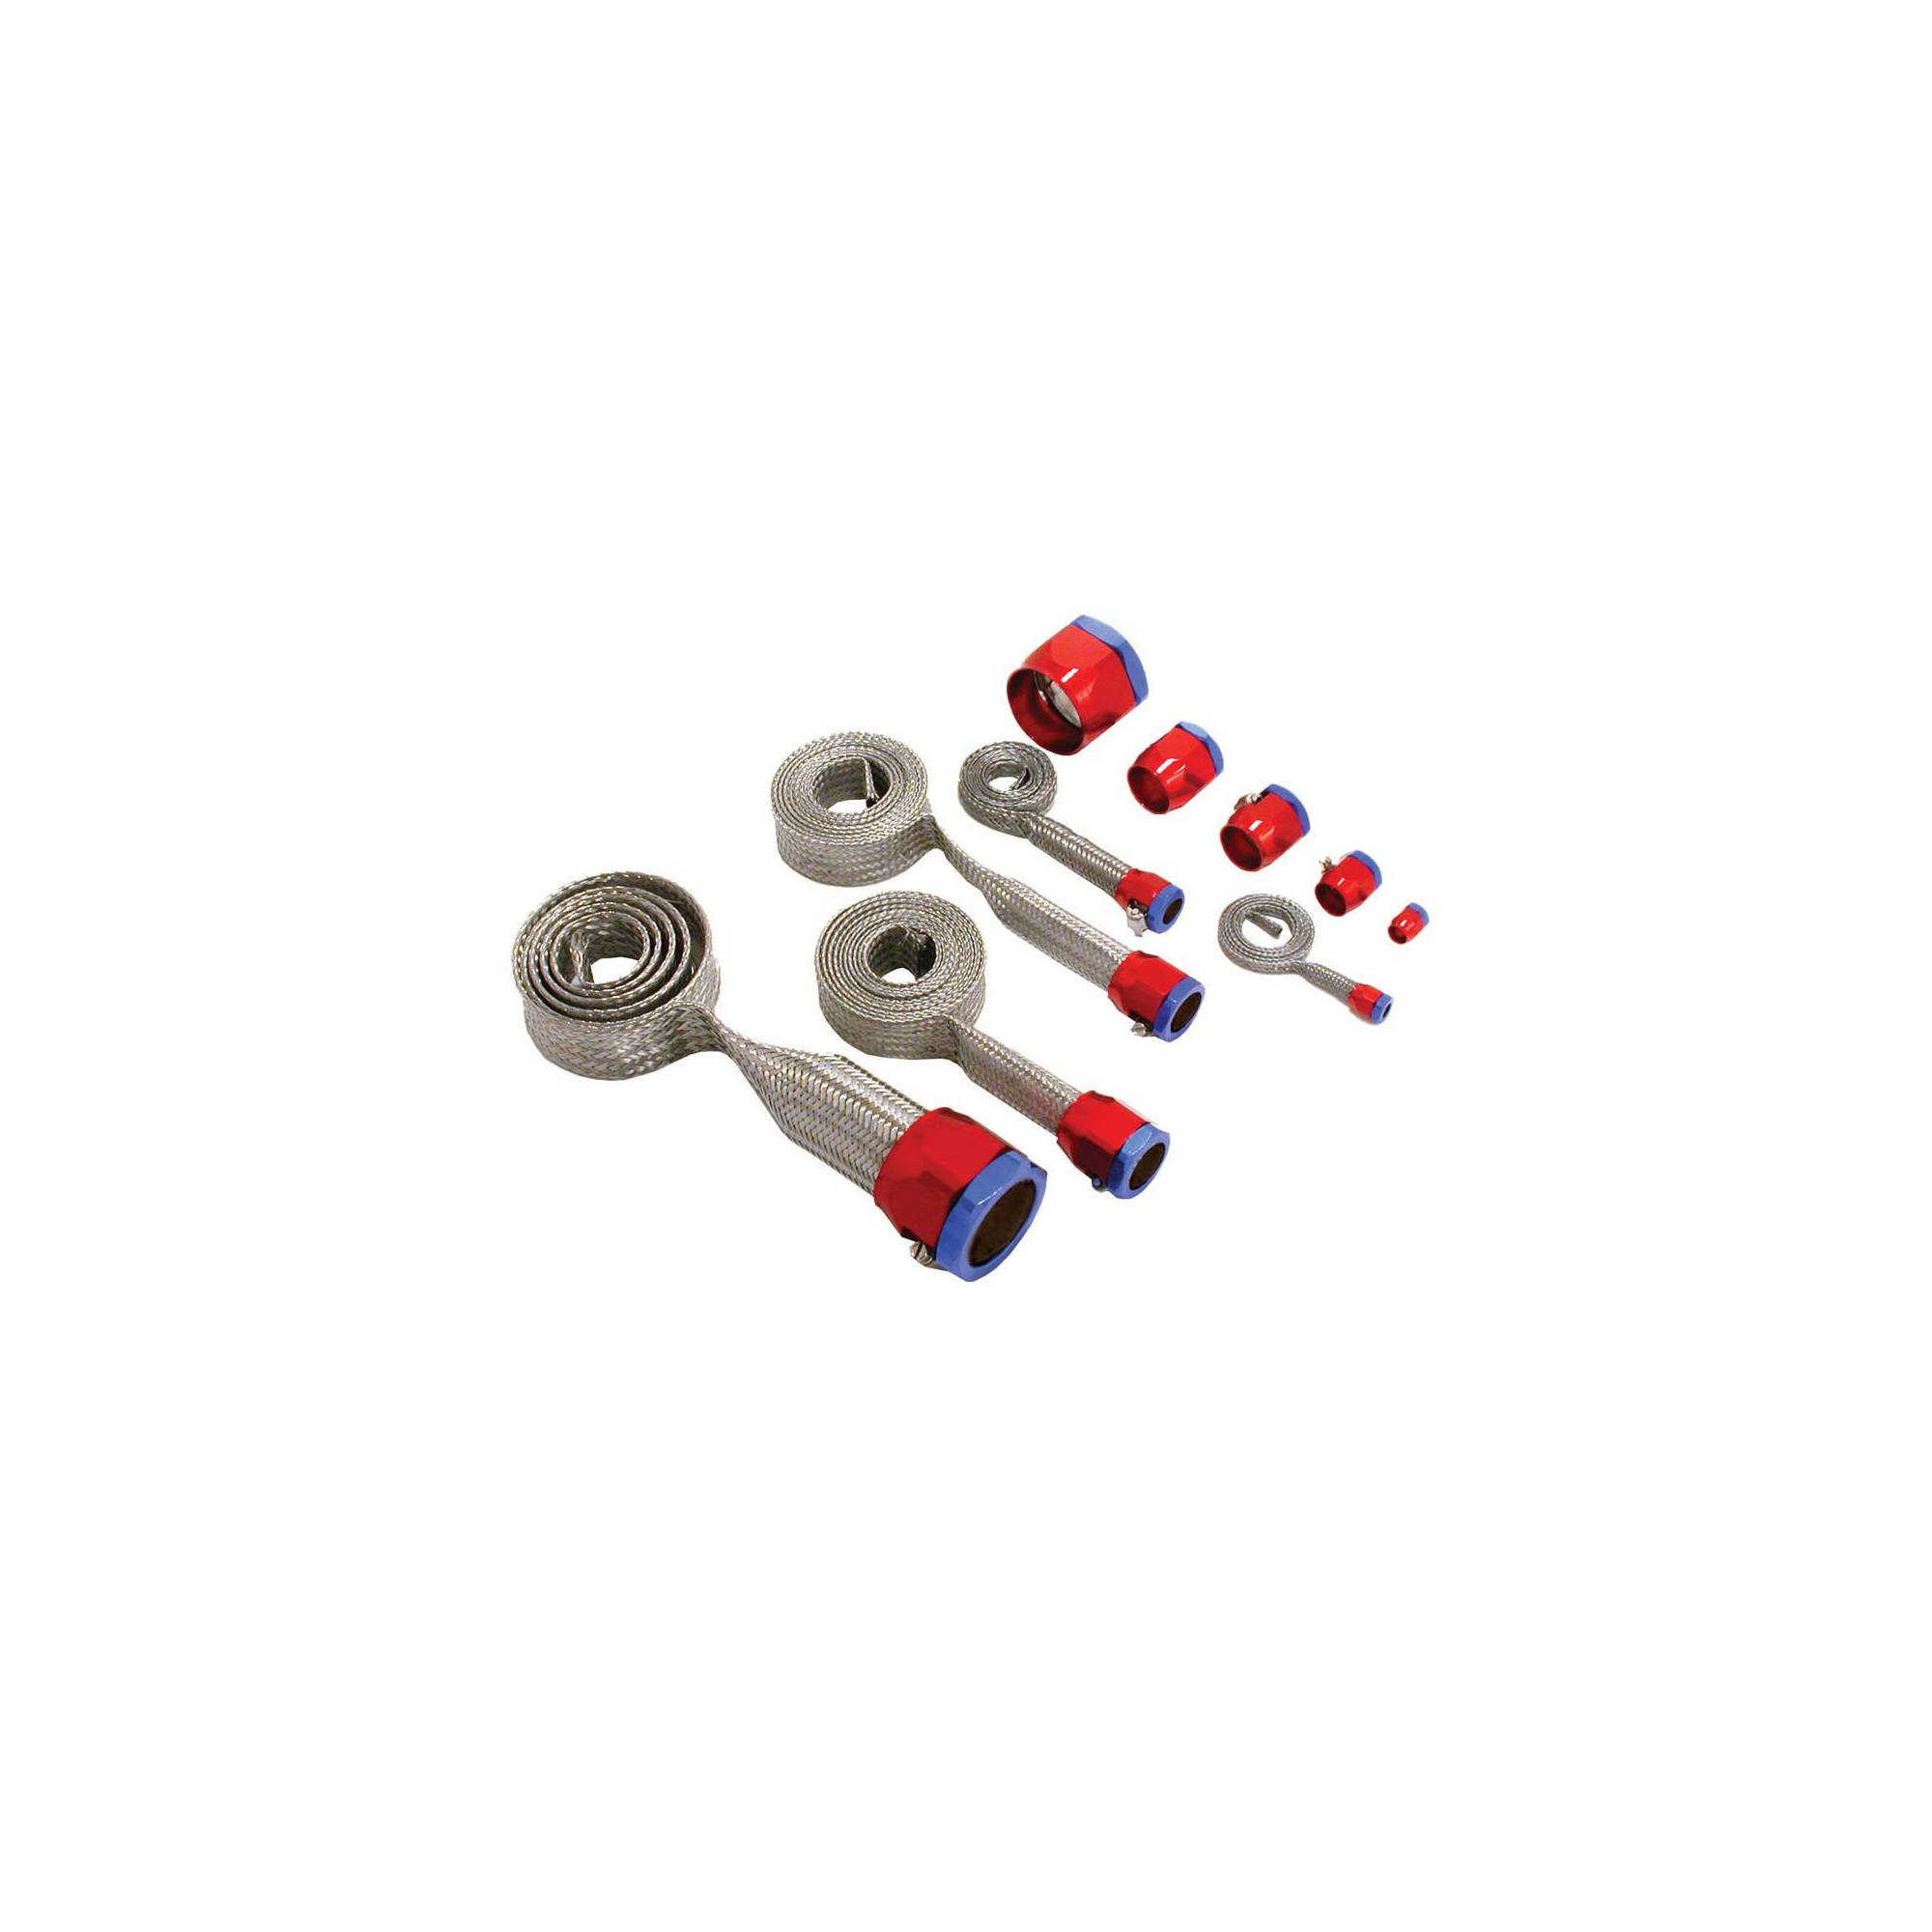 With Red//Blue Clamps Stainless Steel Ecklers Premier Quality Products 33-261357 Camaro Hose Cover Kit Universal